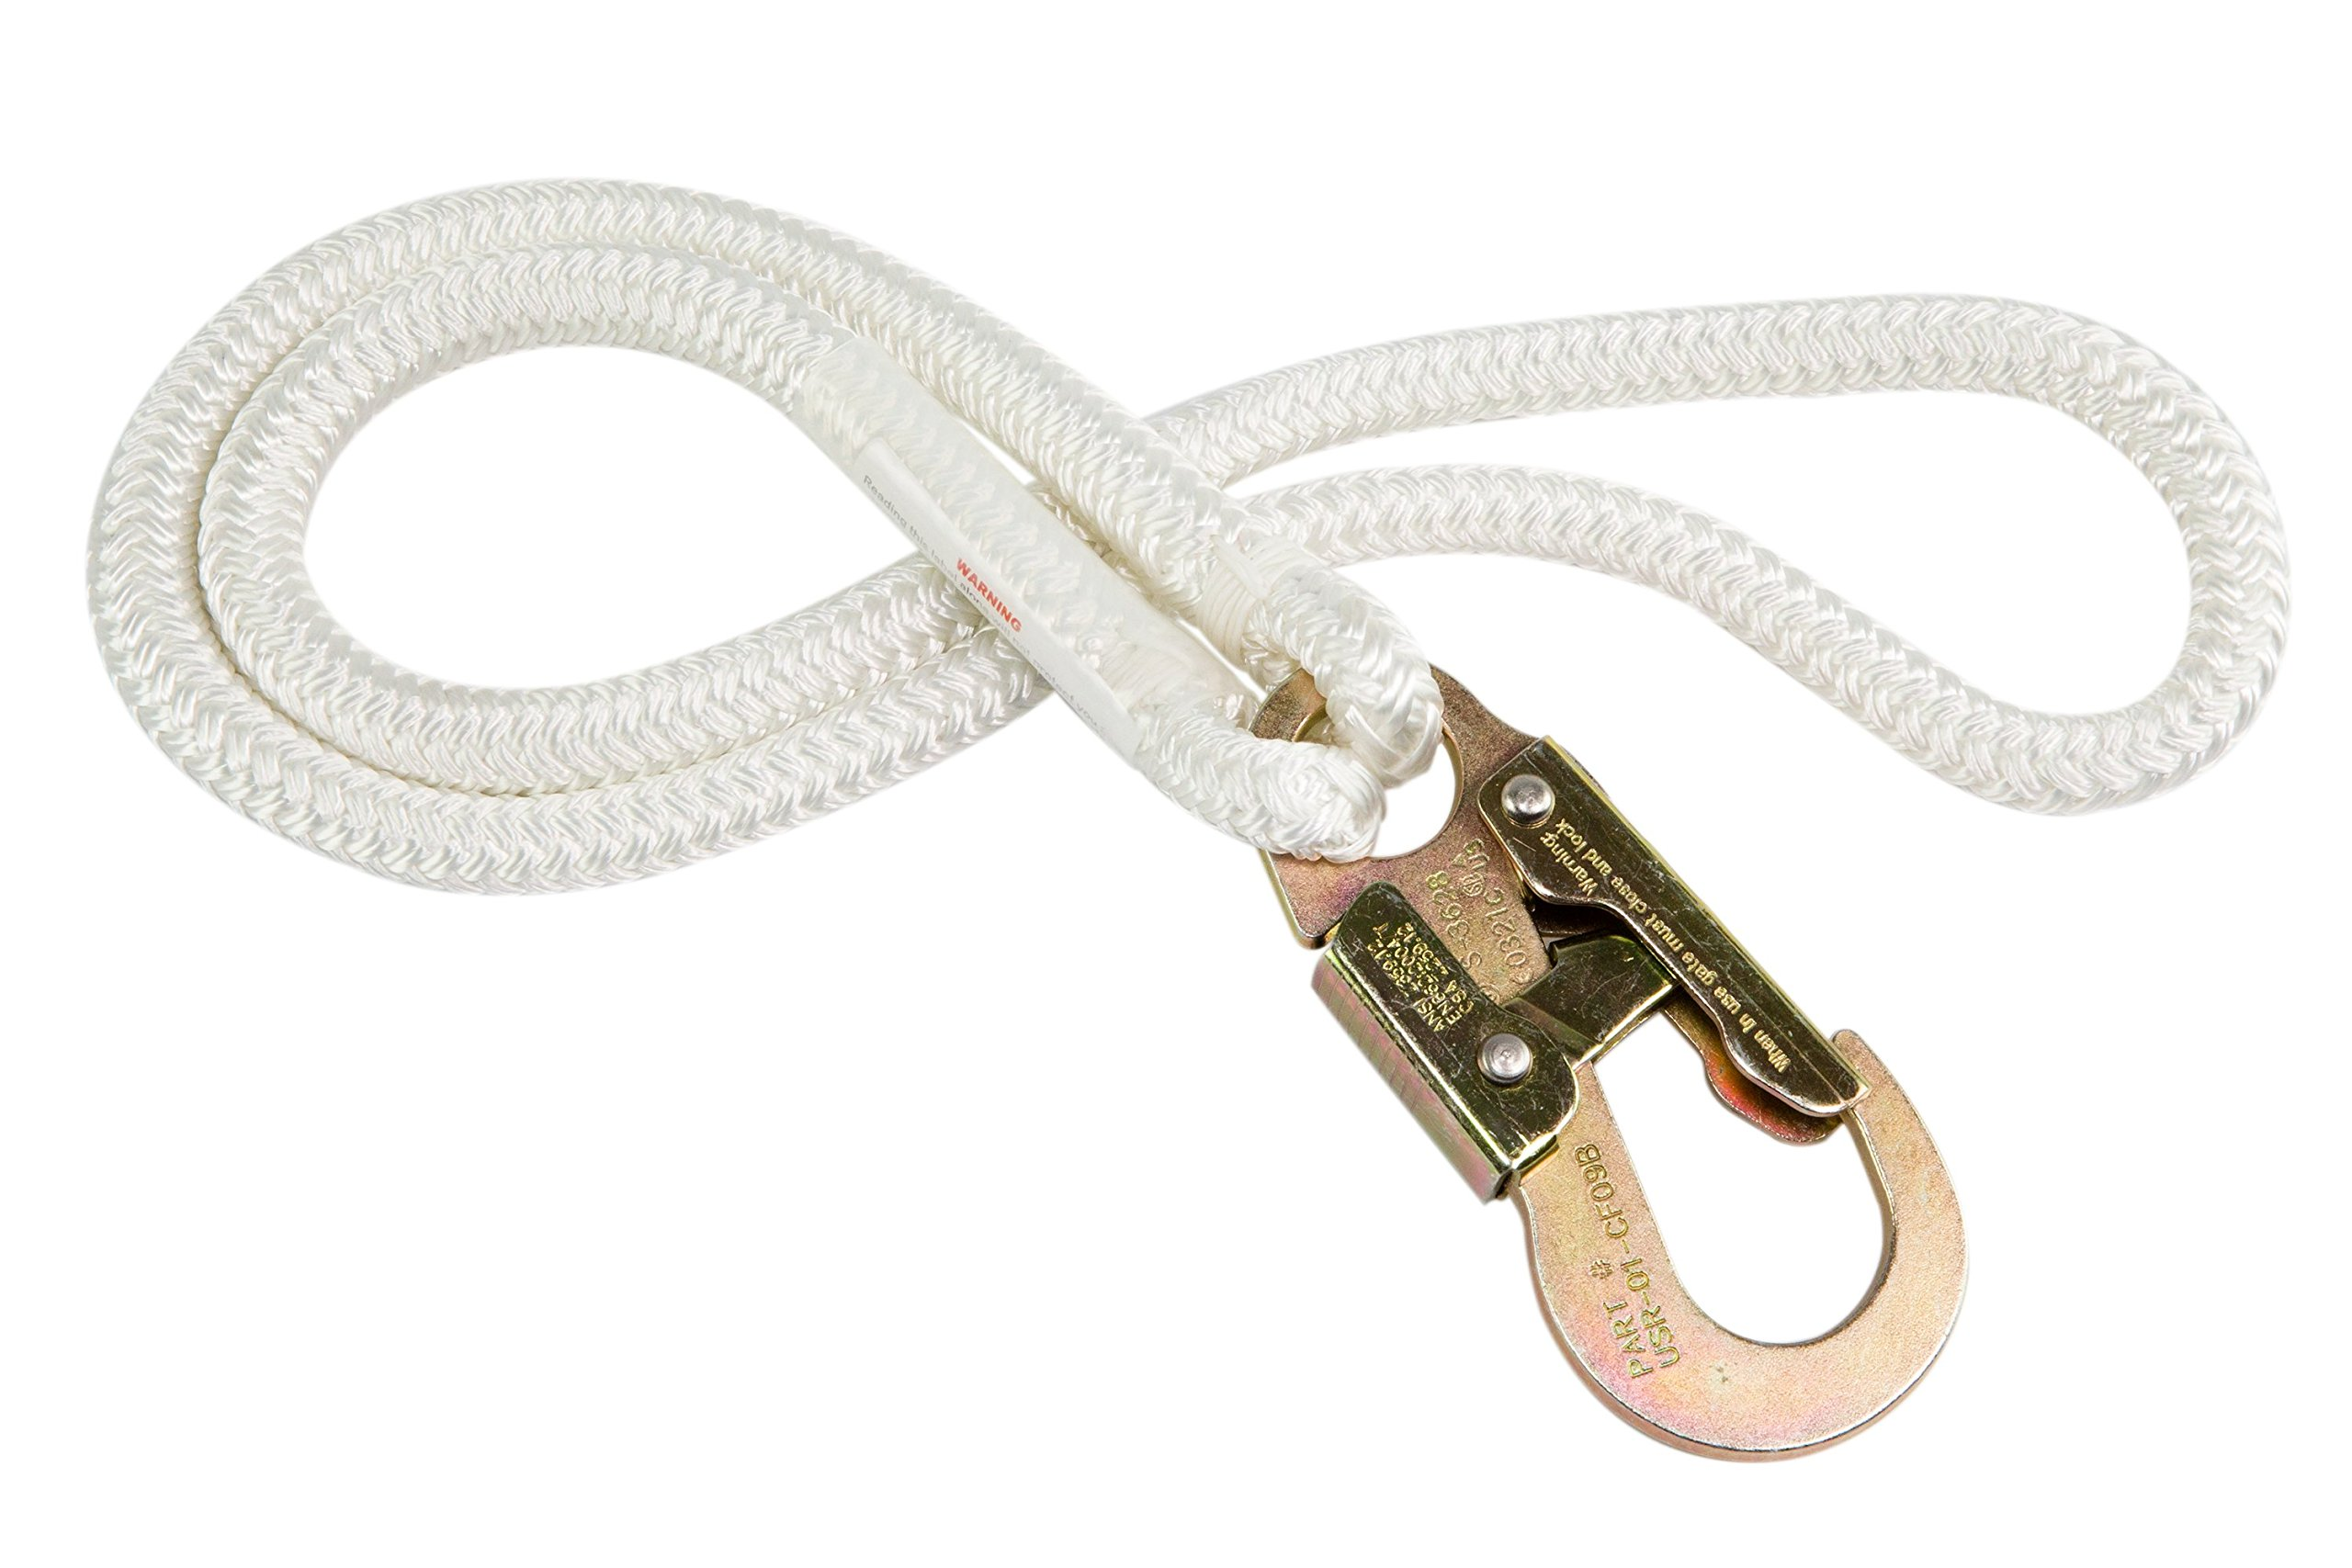 Prusik Runner & Double-Lock Snap Hook (1/2 inch by 20 feet) - Double Braid Polyester Rope, Pre-Spliced, Flexible, Good Grip, Great Resistance - for Tree Contractors, Arborist Work